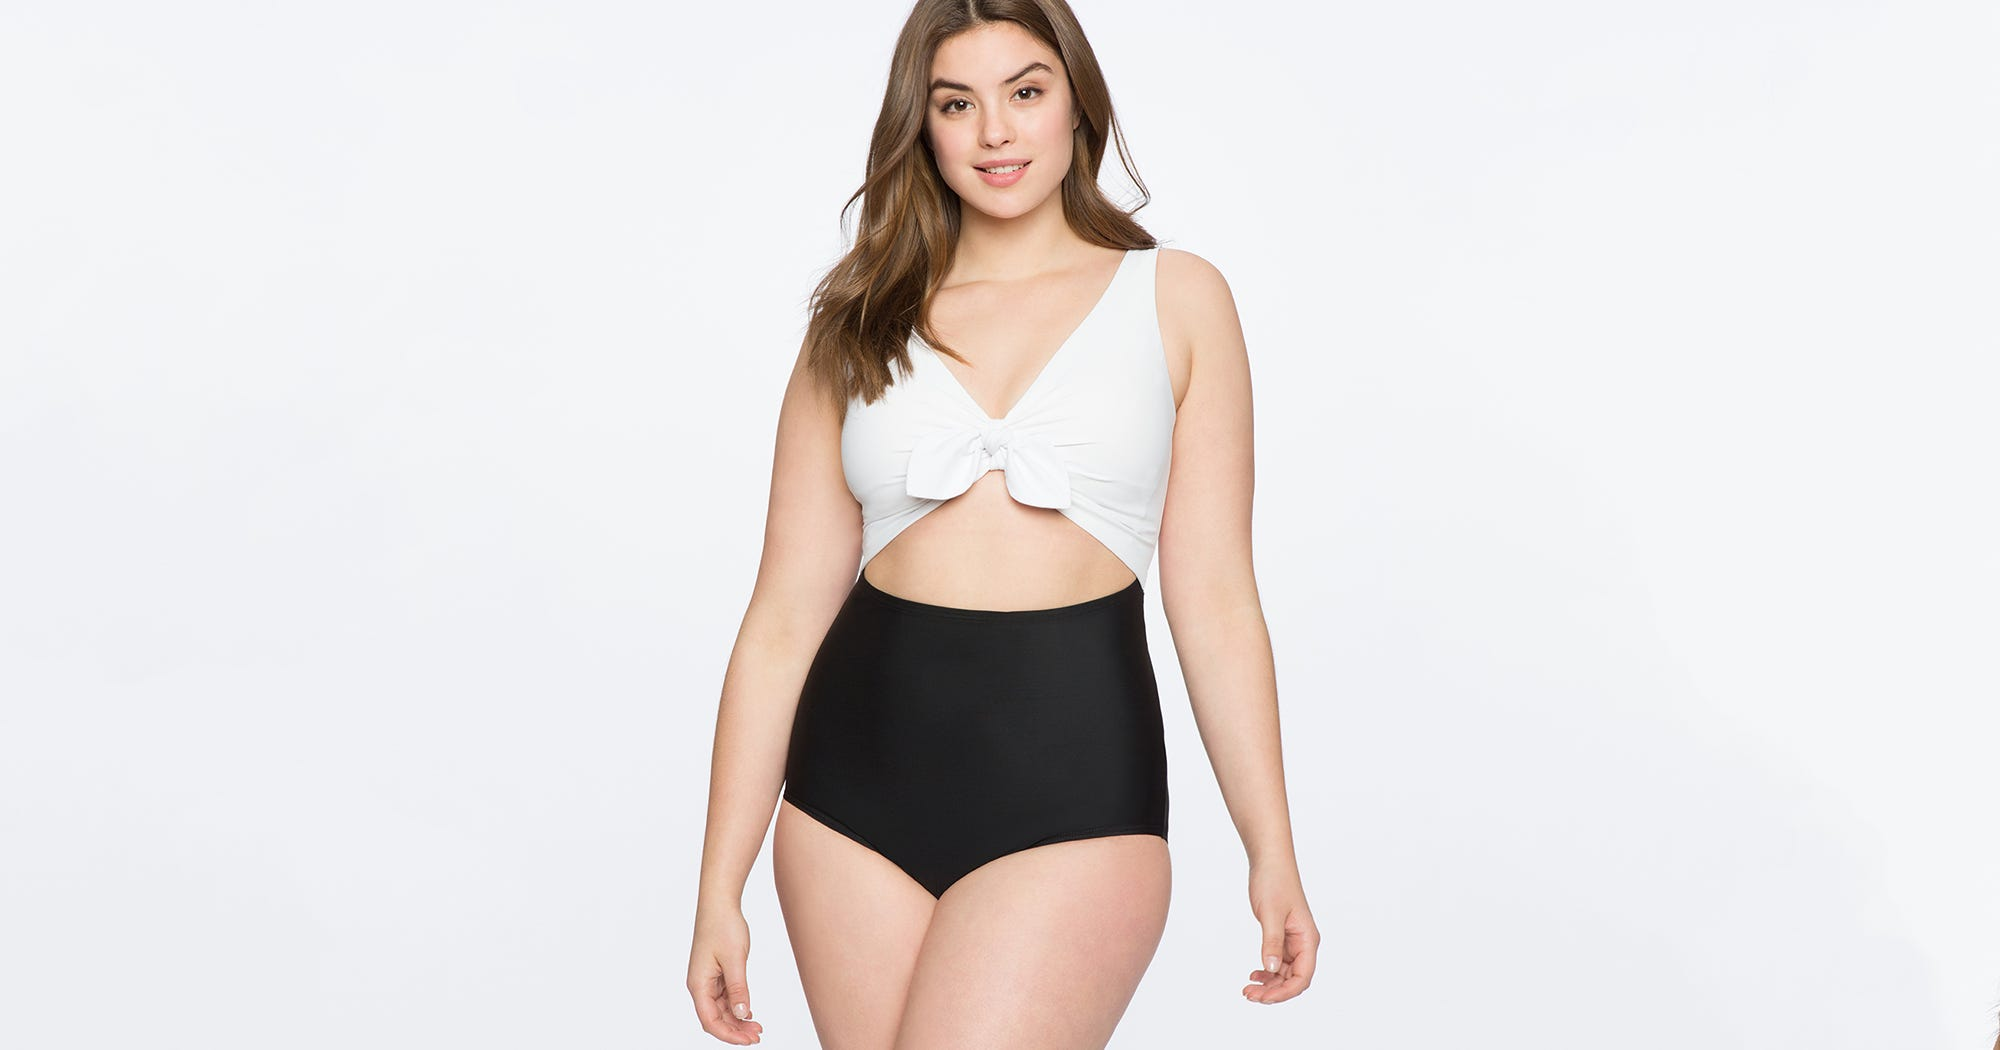 8892c9a5443 New Eloquii Cute Plus Size Women Swimsuits Collection